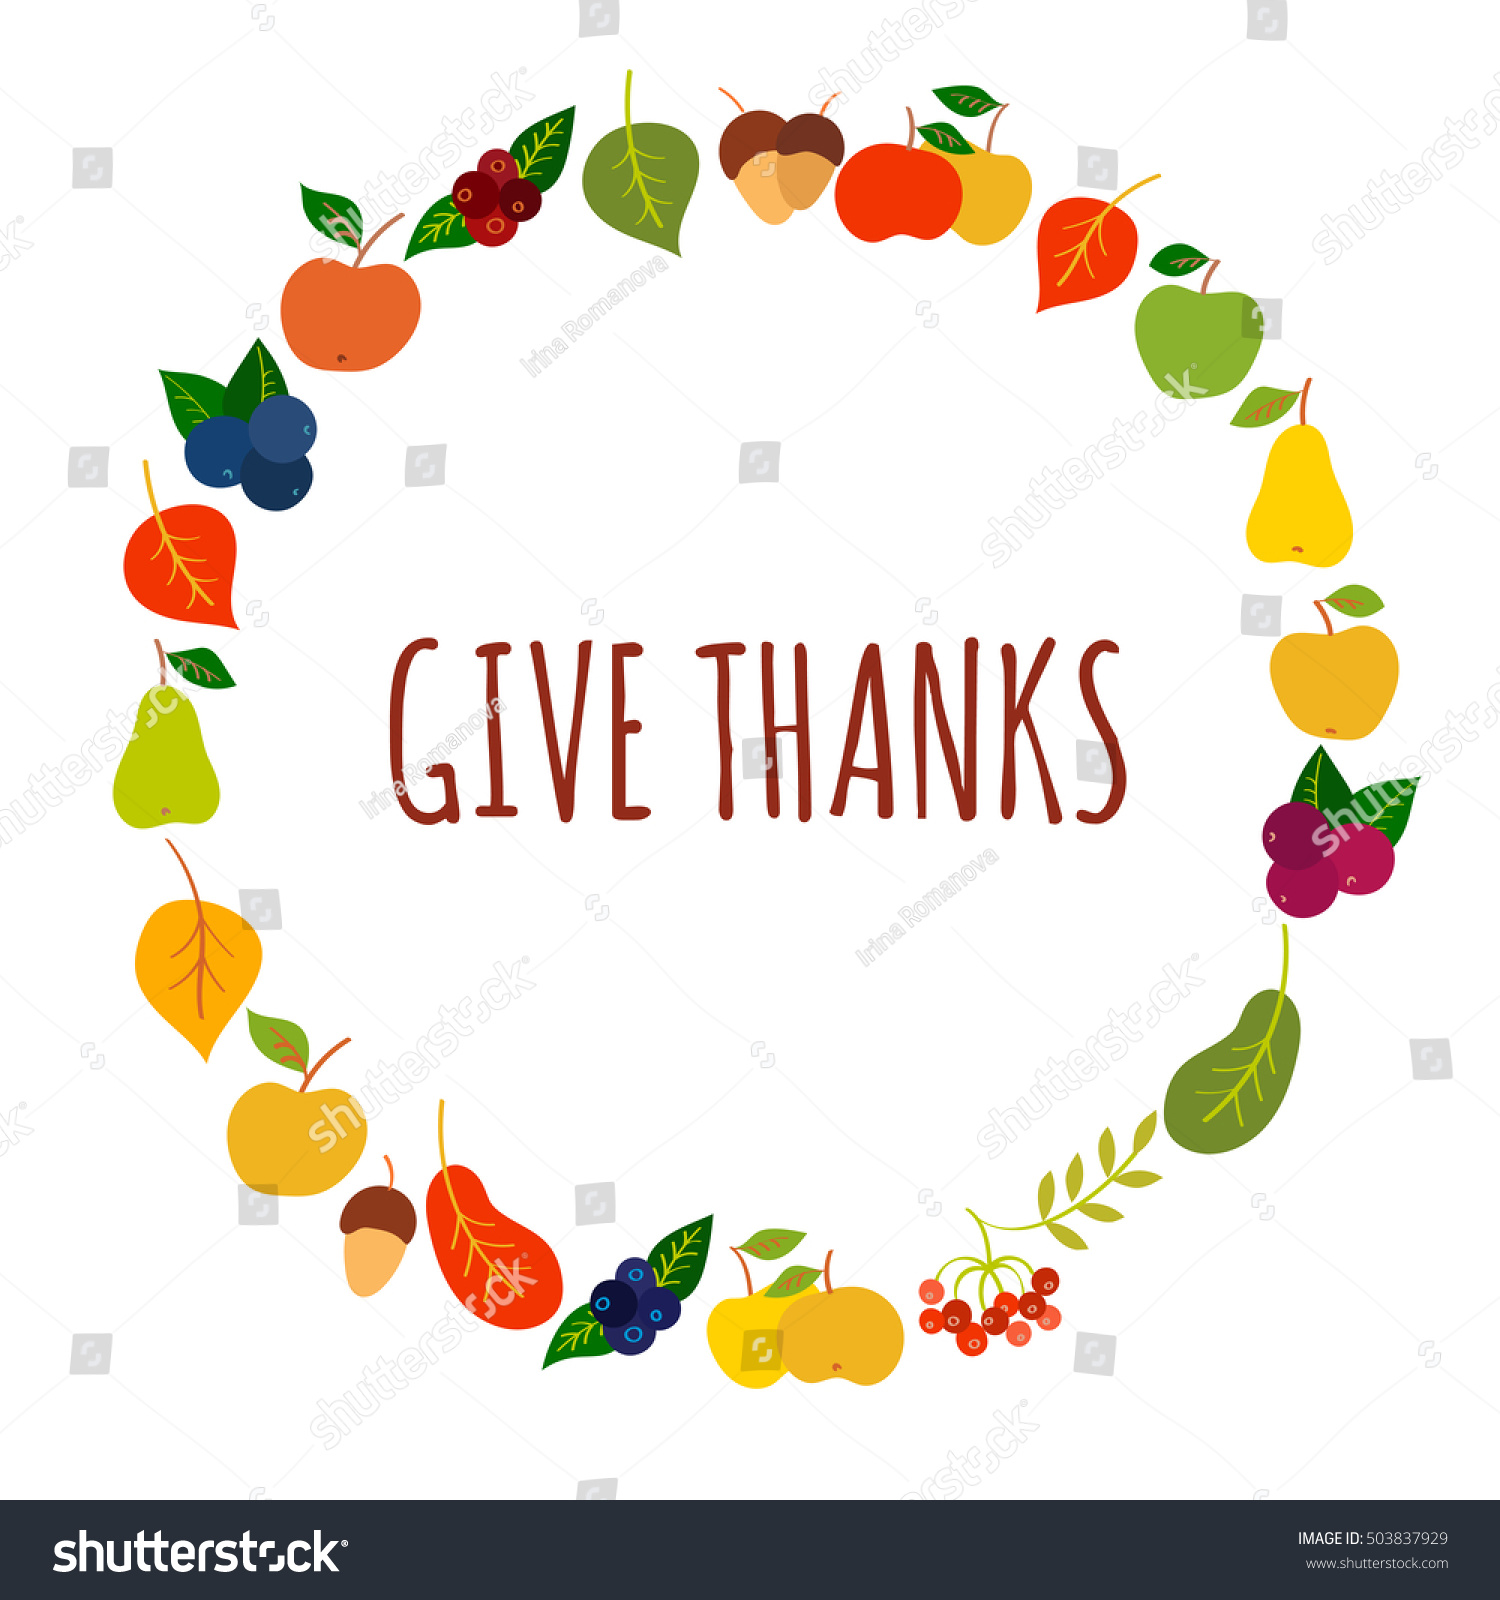 Give Thanks Vector Card Template Stock Vector 503837929 Shutterstock